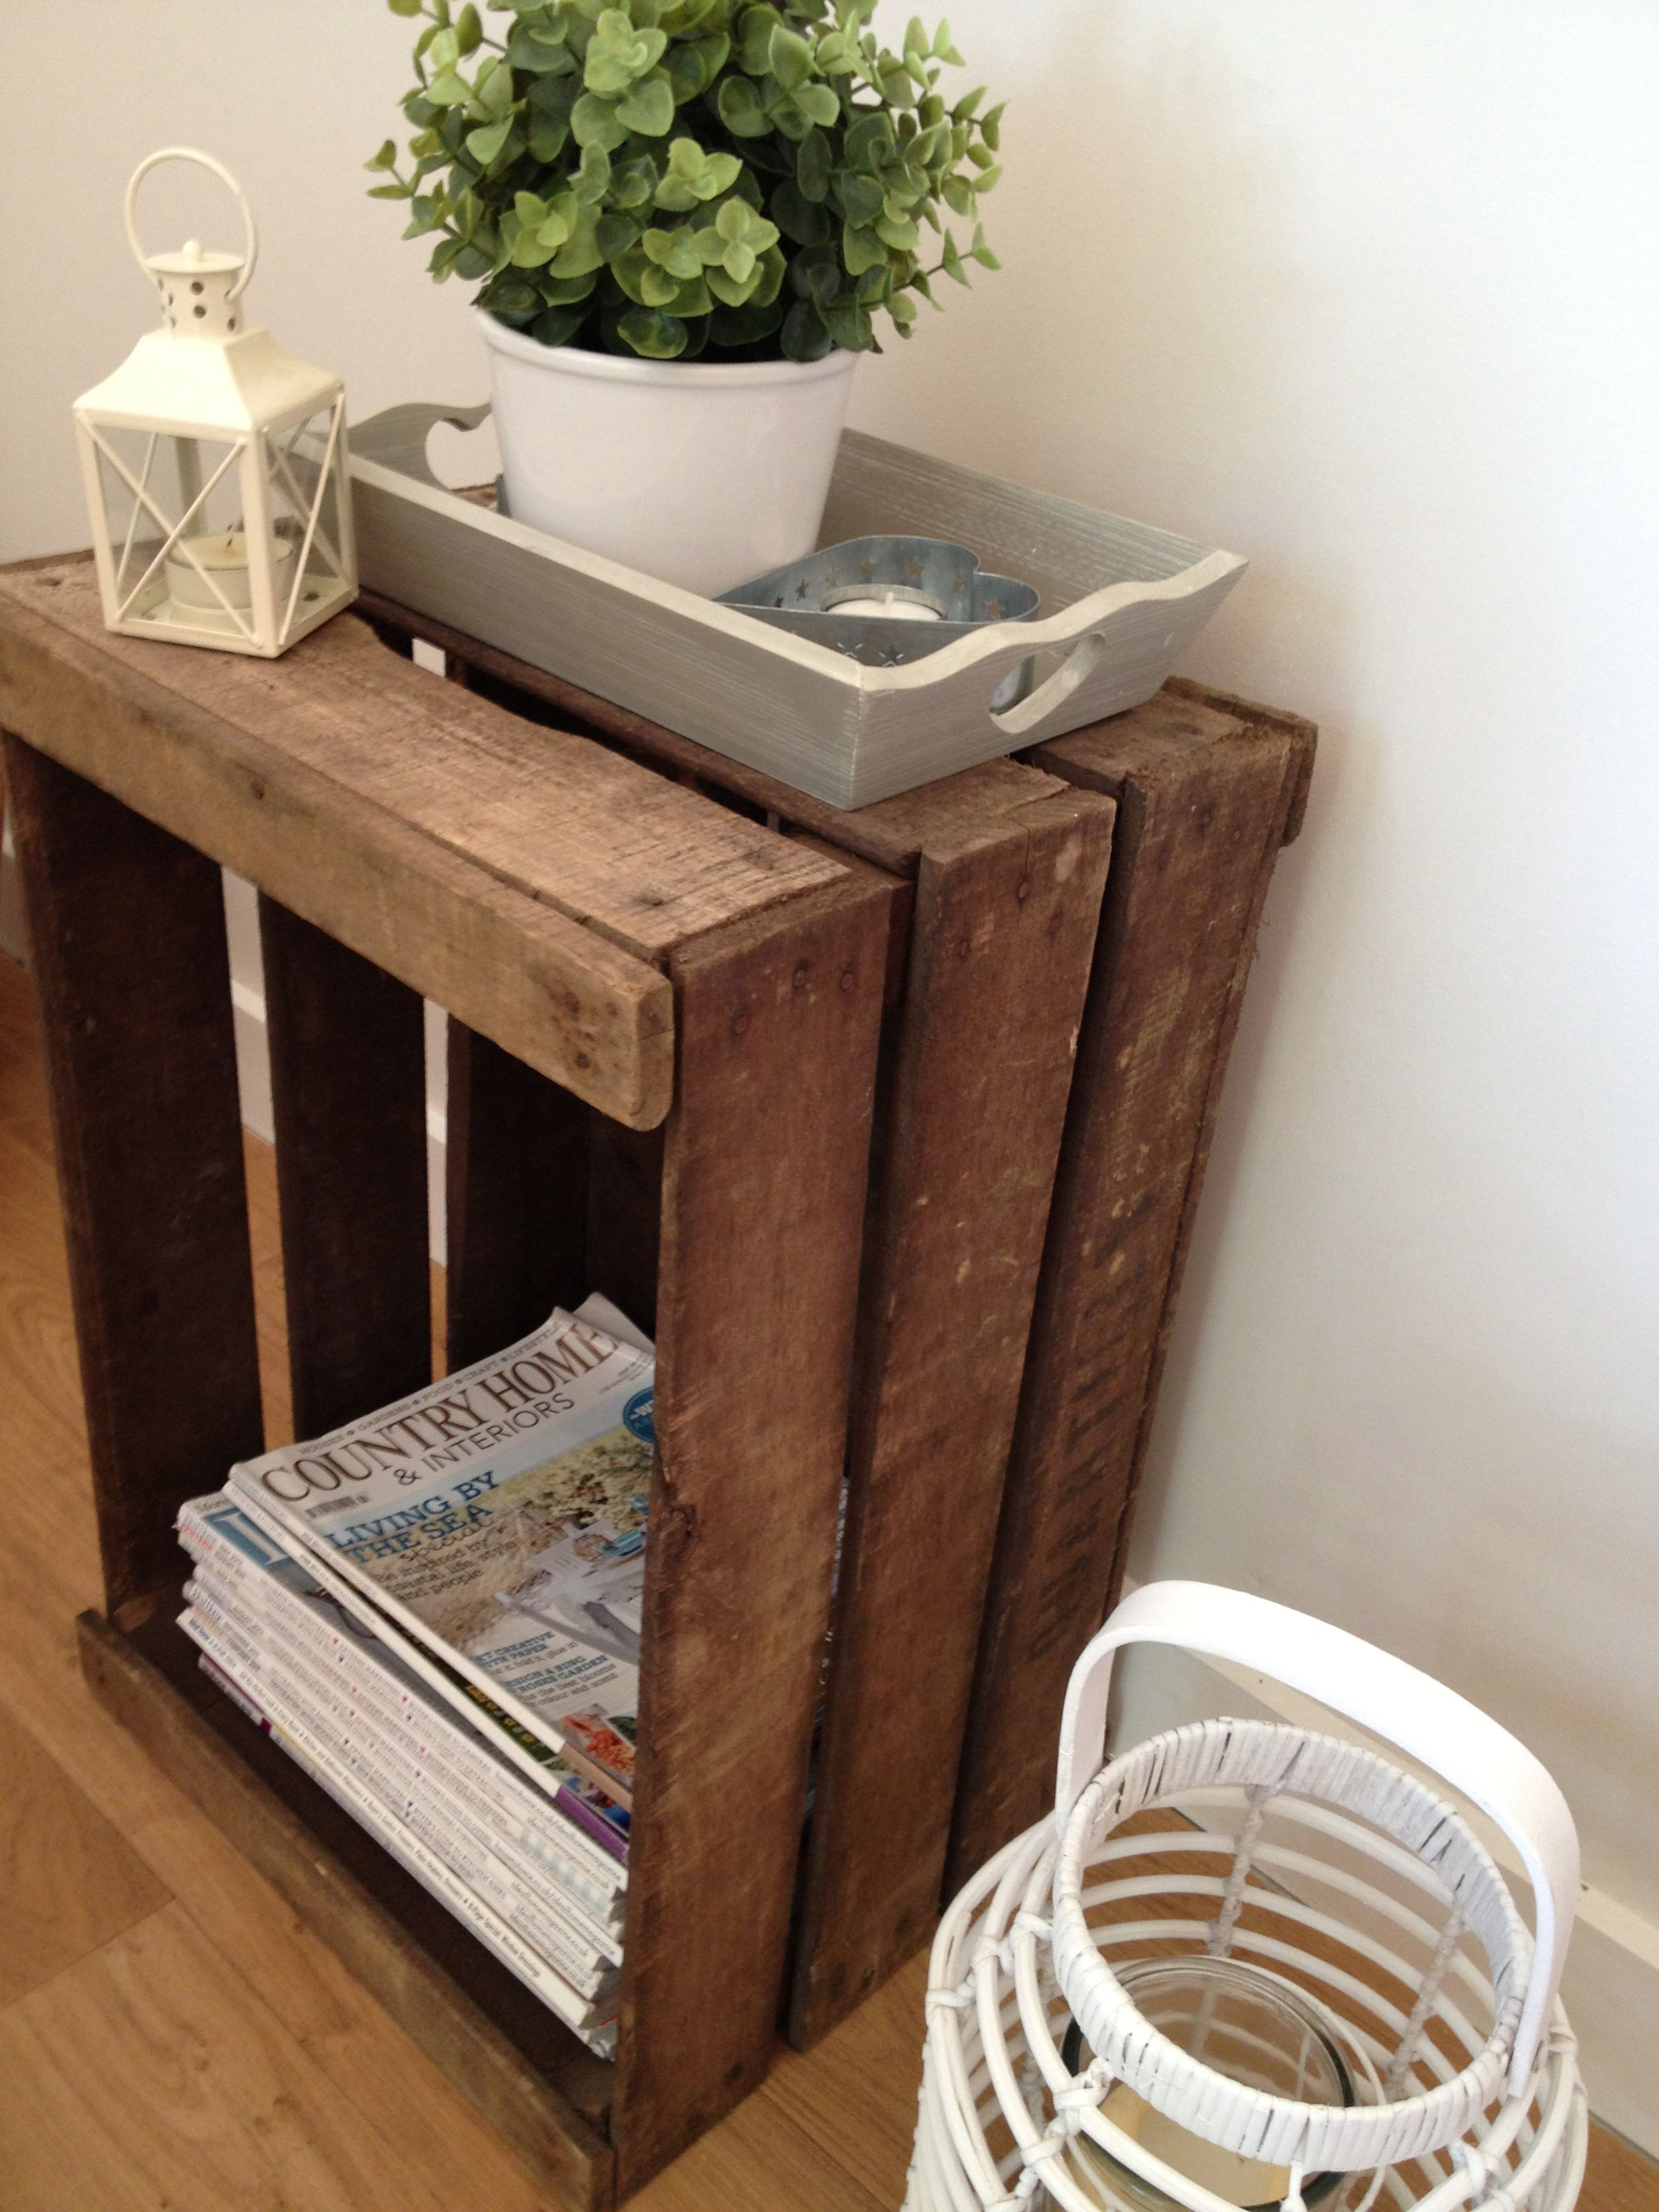 Wooden Crate Ideas Bedside Table Diy Diy Wooden Crate Crate Bedside Table